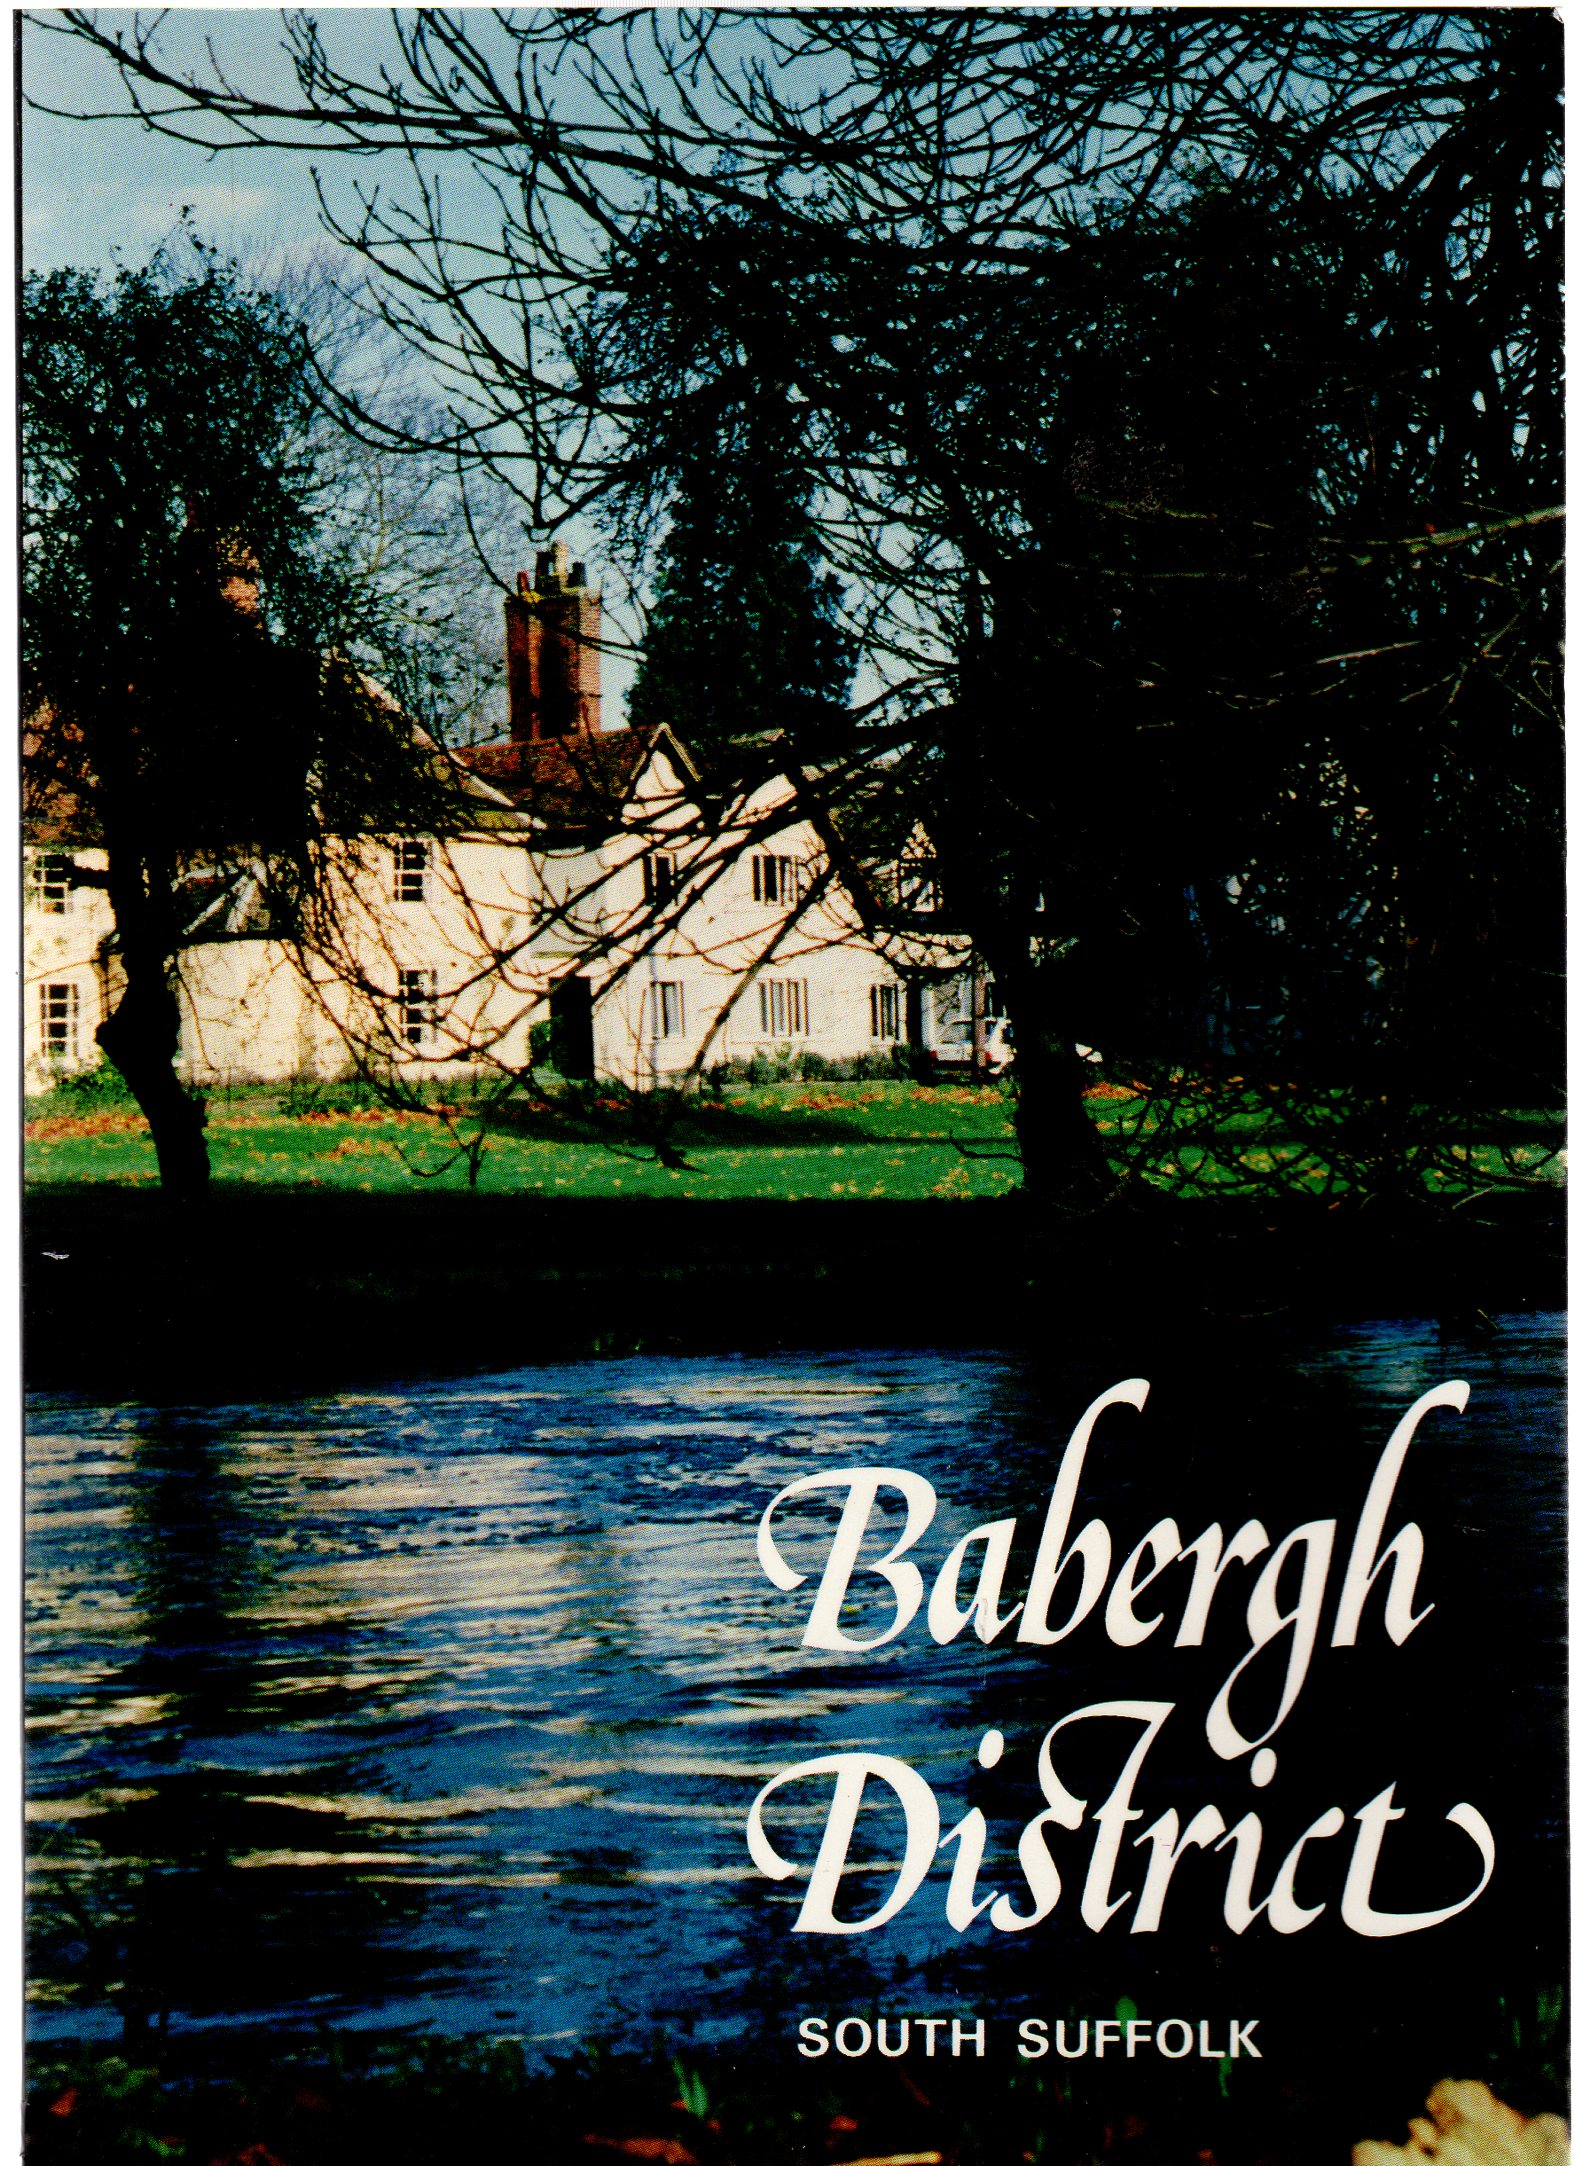 Image for Babergh District Council Official Guide